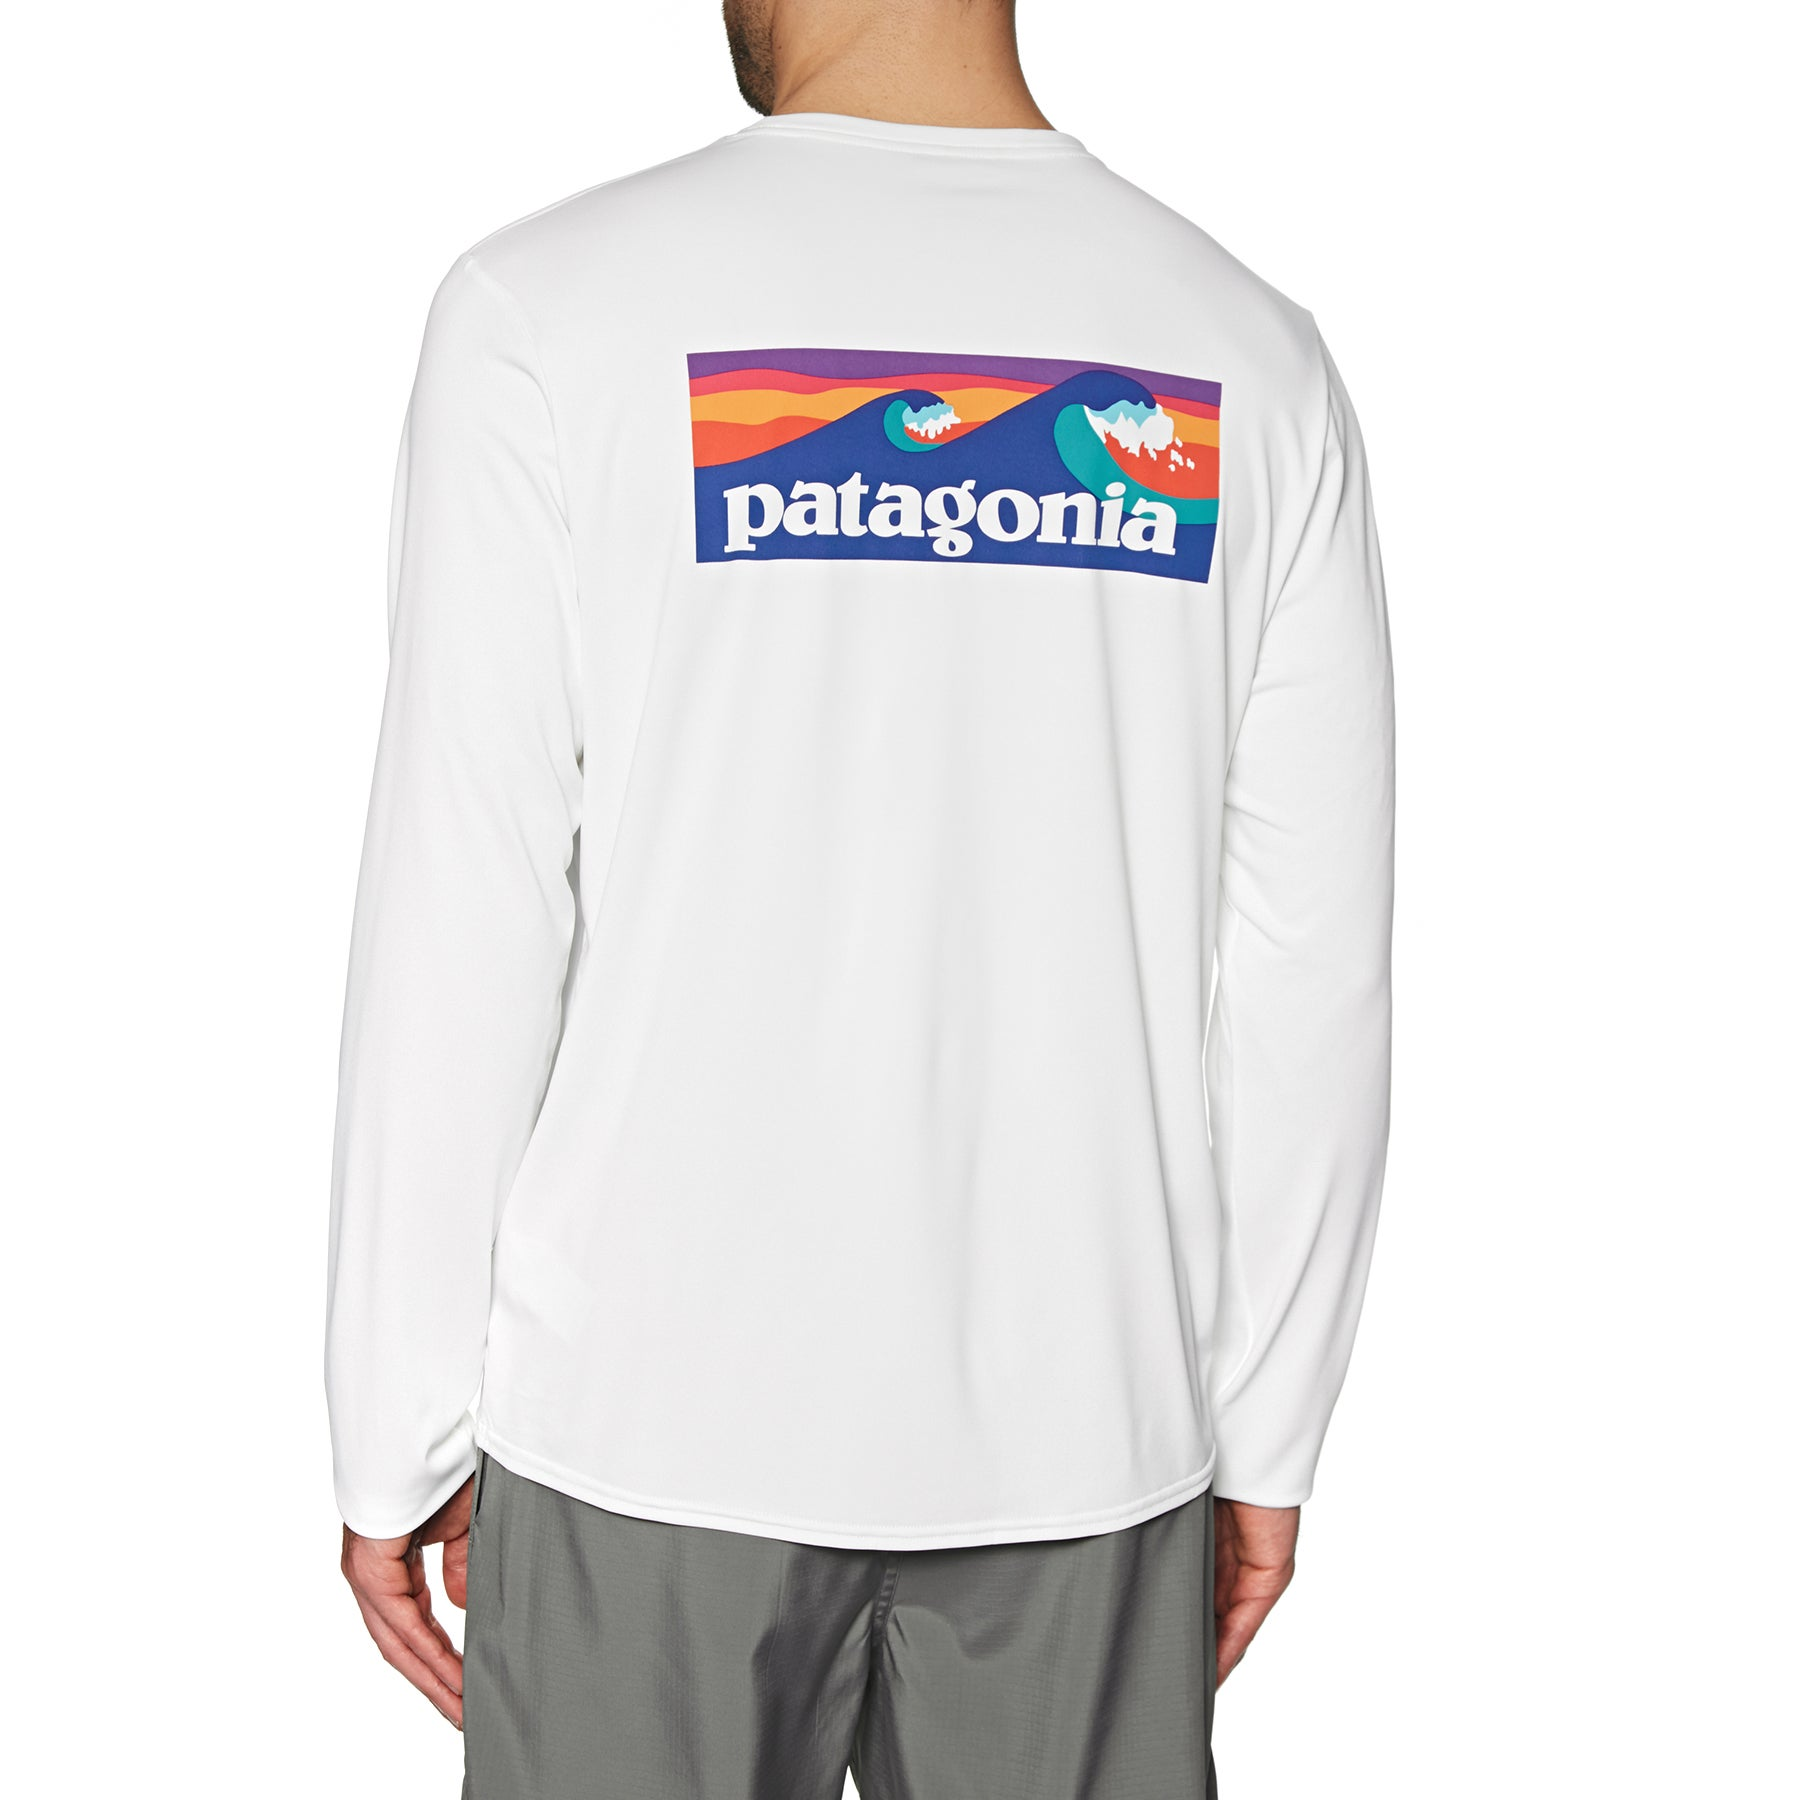 398ec269 Patagonia Cap Cool Daily Graphic Mens T-shirt Long Sleeve - White ...